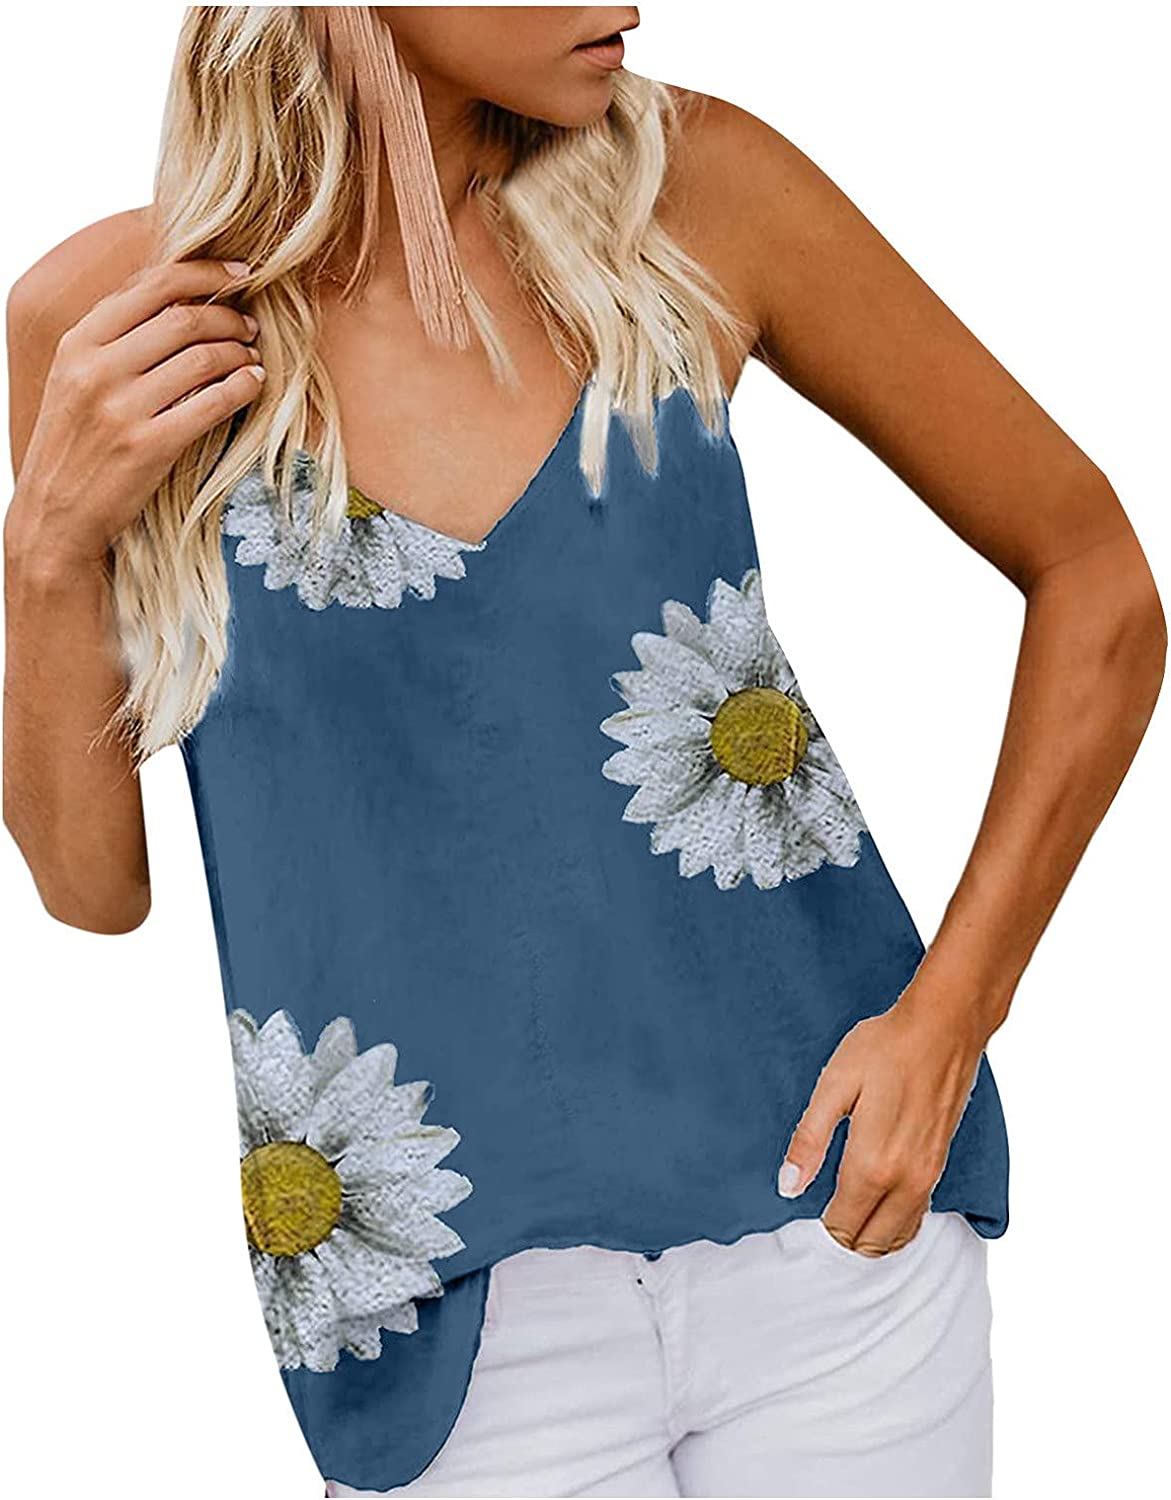 AODONG Tank Tops for Women, Womens Fashion Summer Casual Vacation Sleeveless Graphic Vest Tops Tee Shirts Blouse Tops